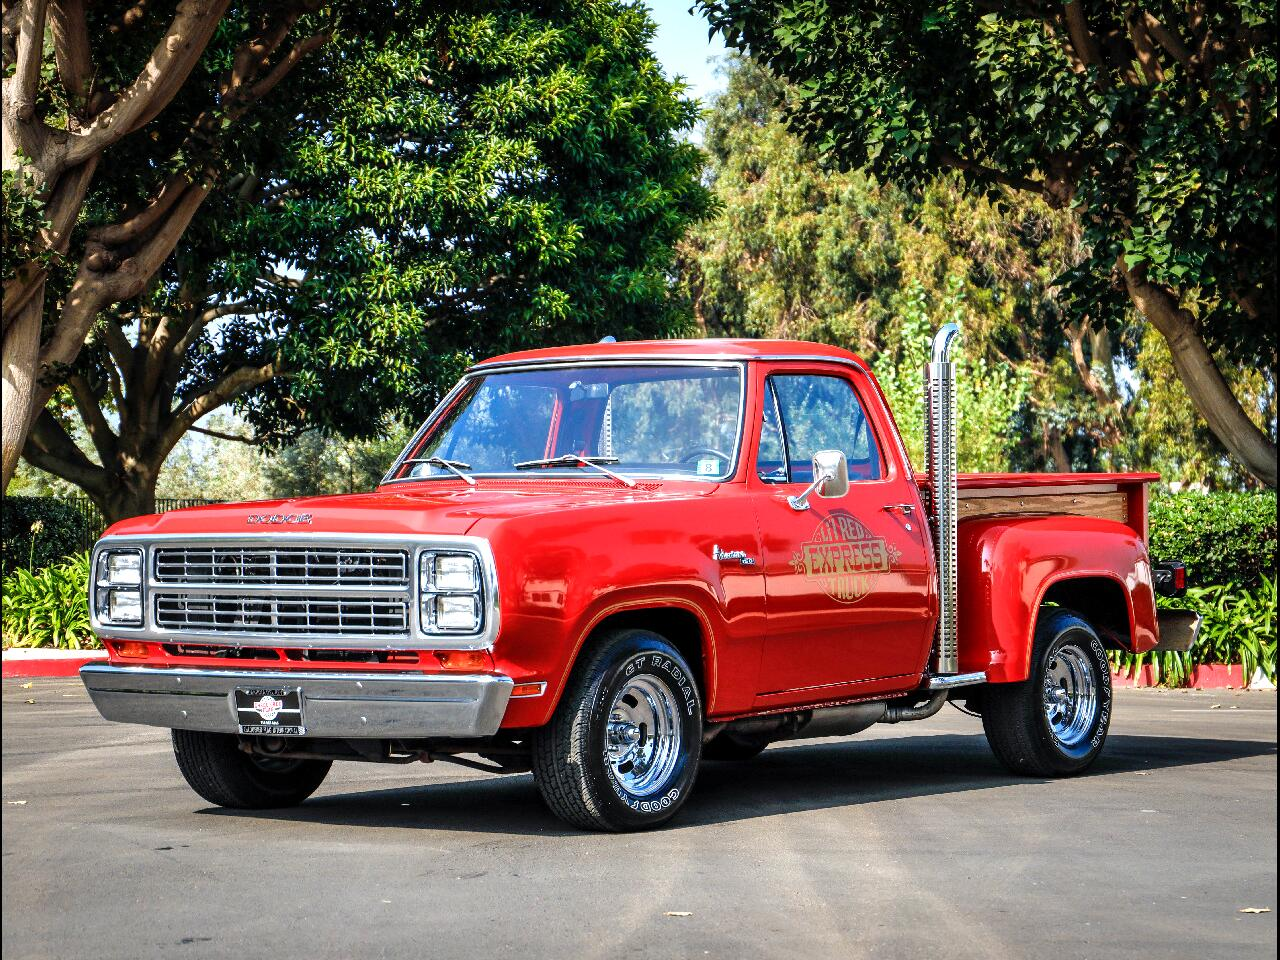 1979 Dodge Lil Red Truck Express 150 Pick up